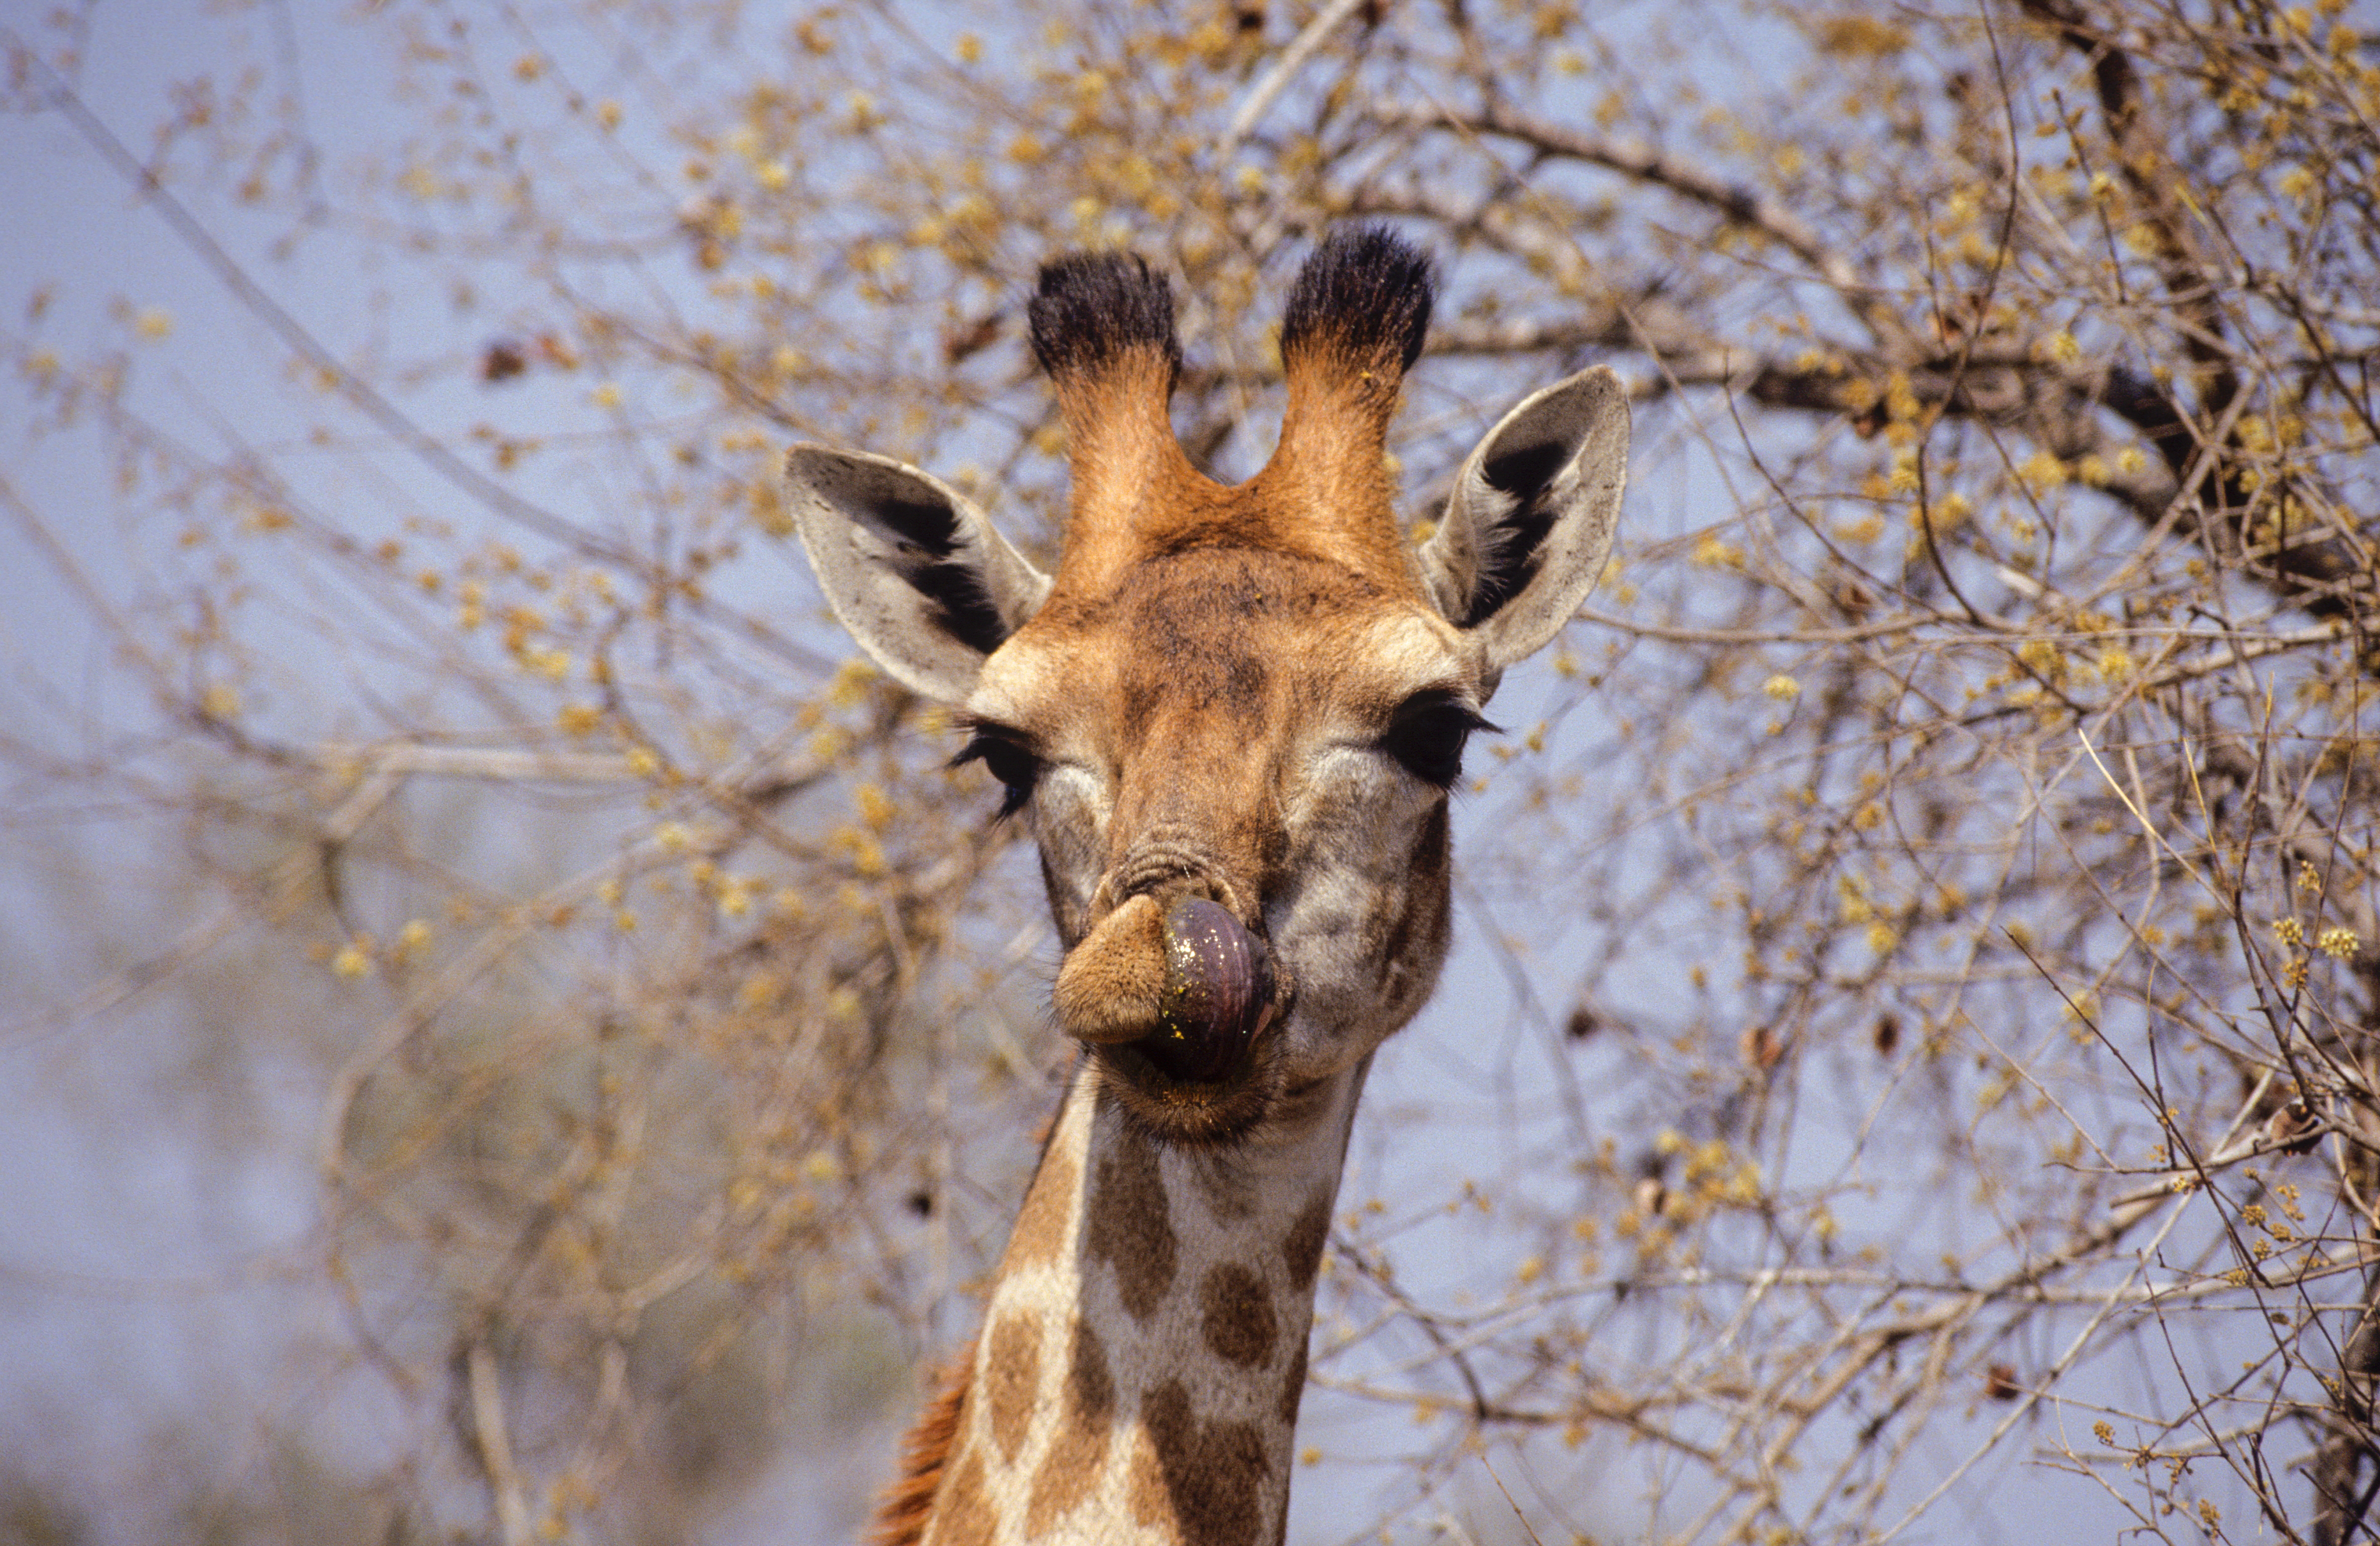 A female Giraffe licks her lips.